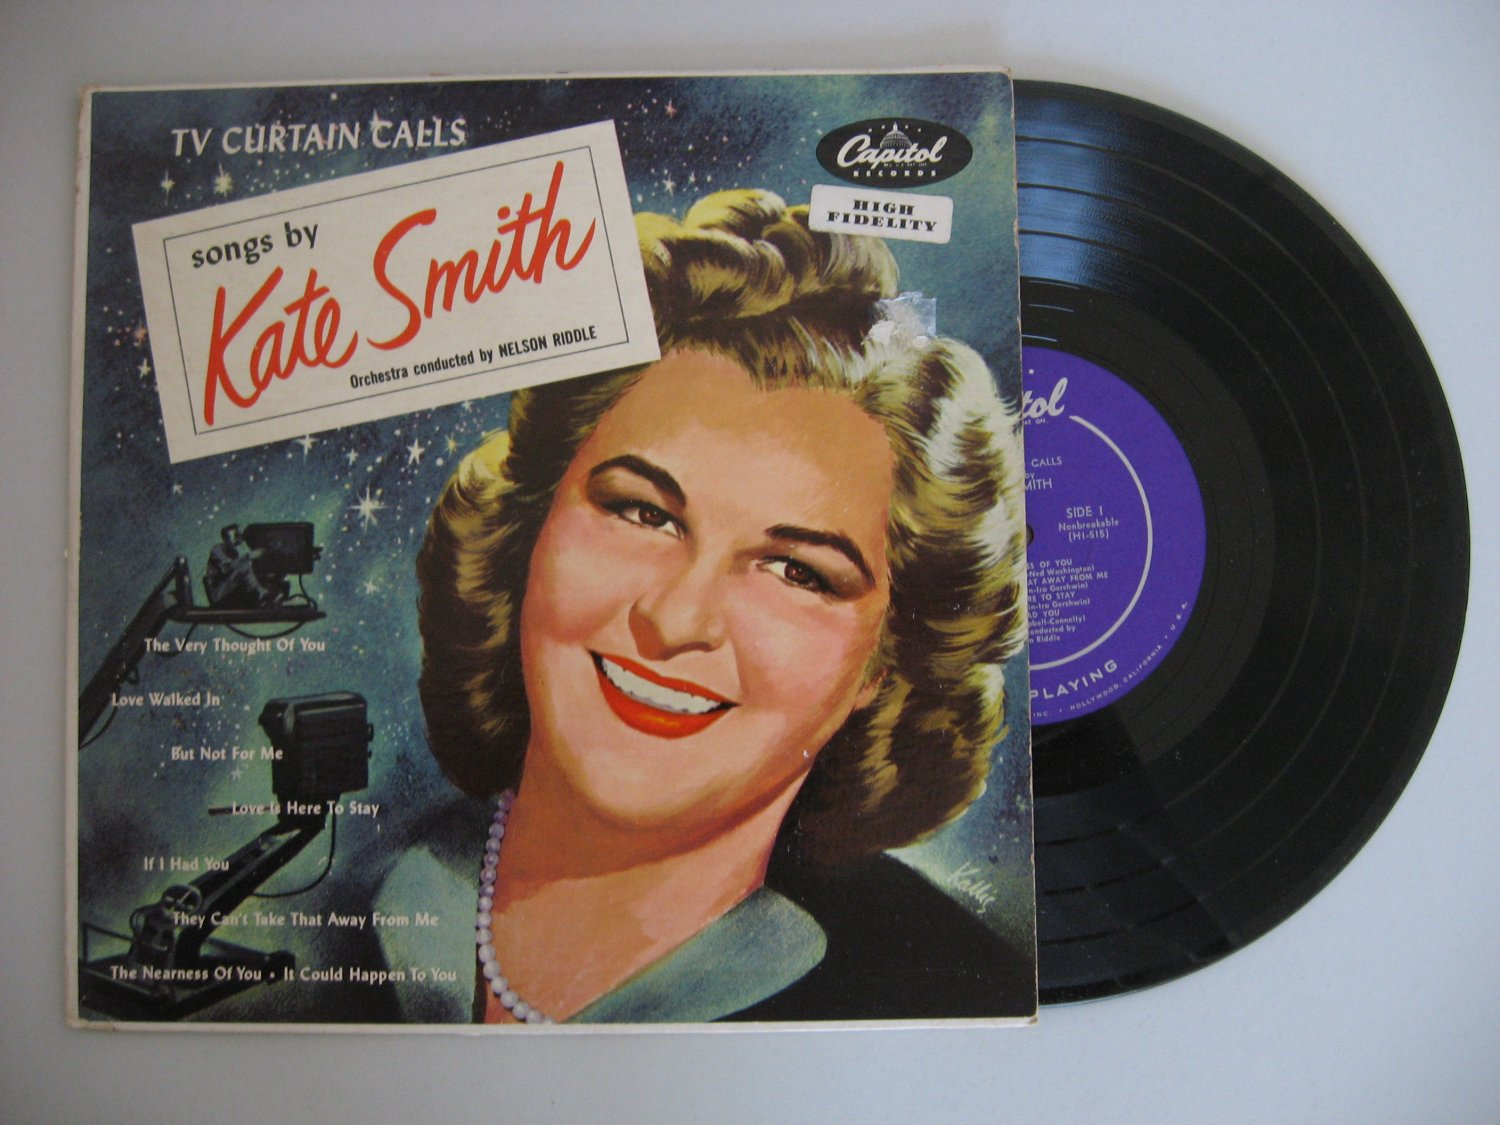 Kate Smith - TV Curtain Calls  (Vinyl Record)